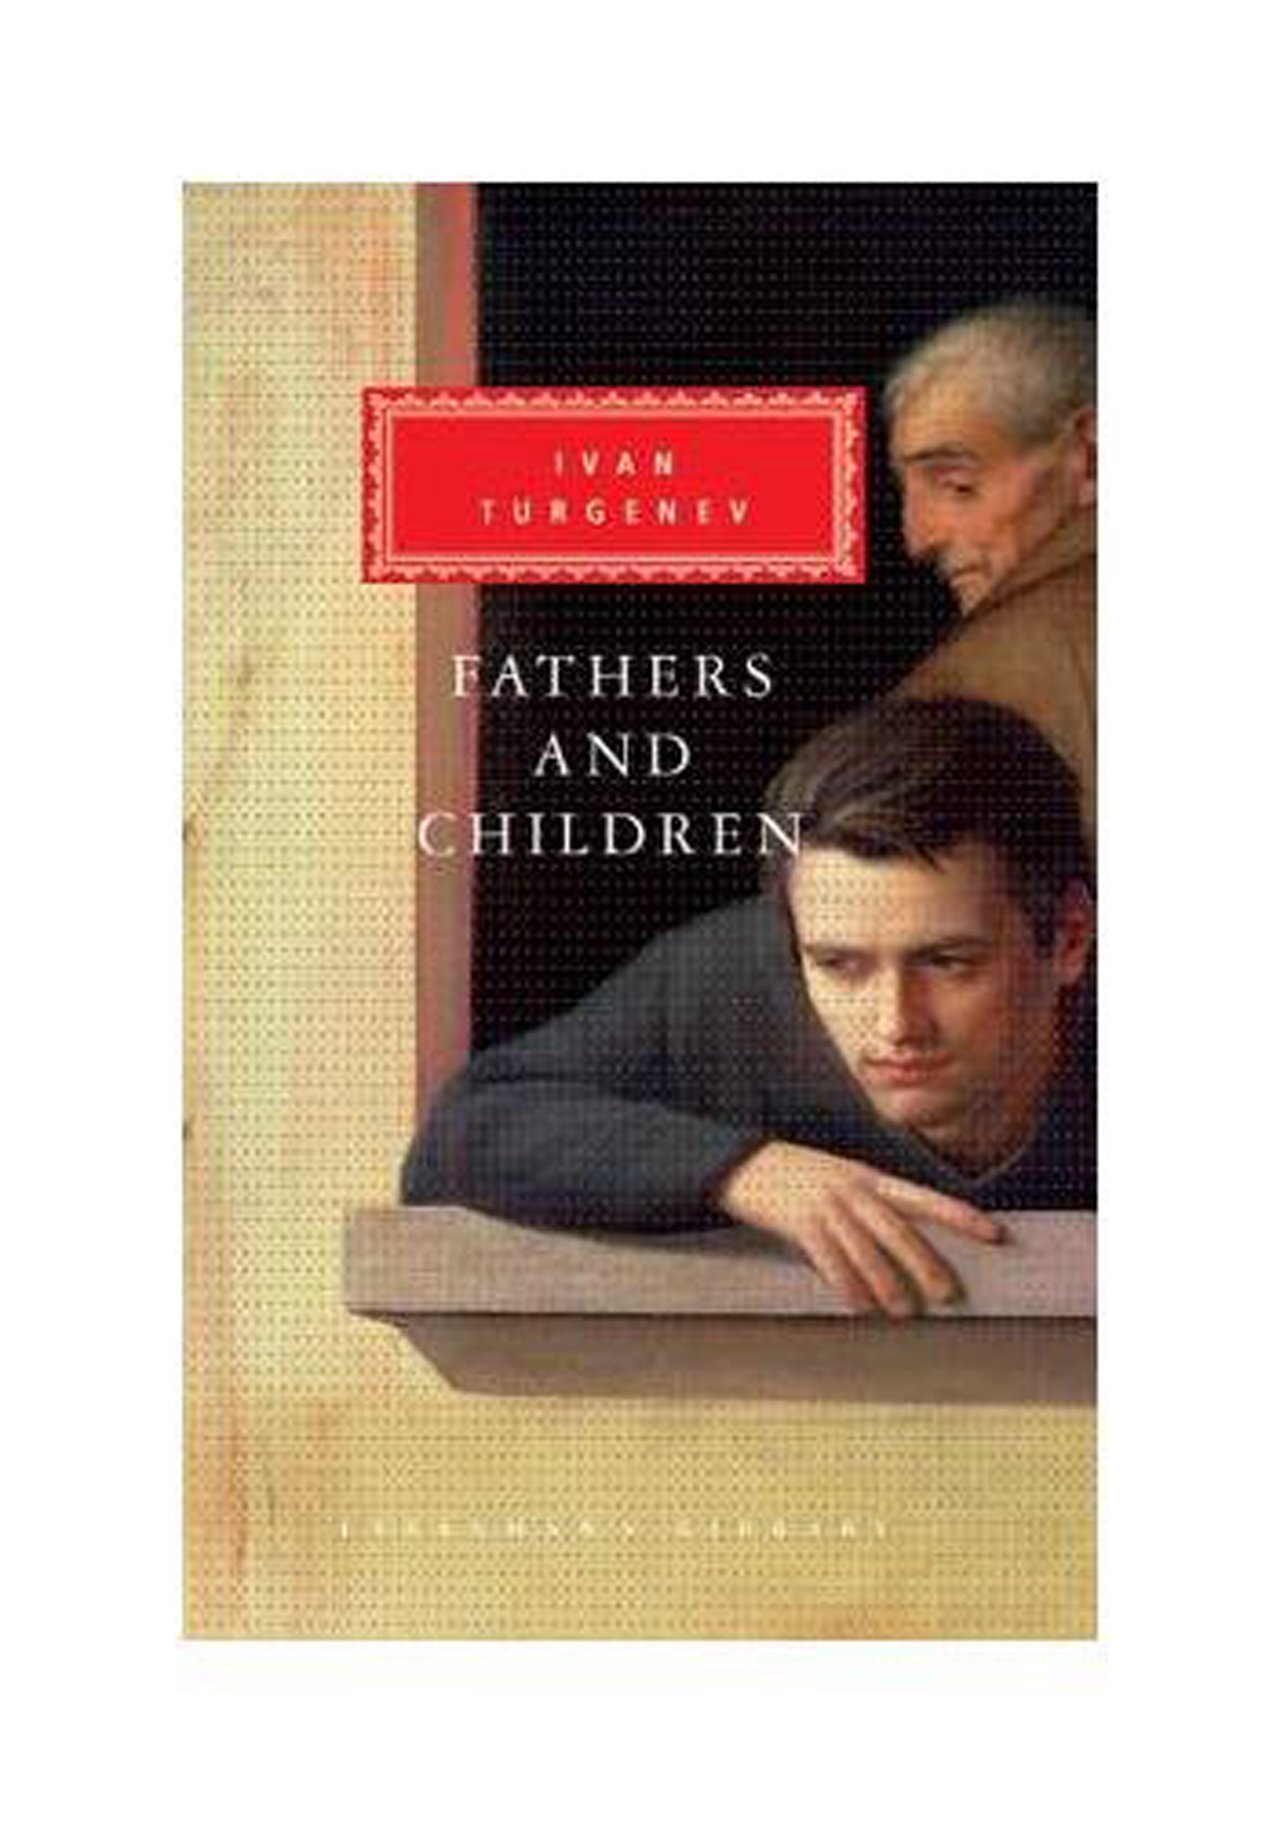 Characteristic Bazarov, his role in the novel Fathers and Children